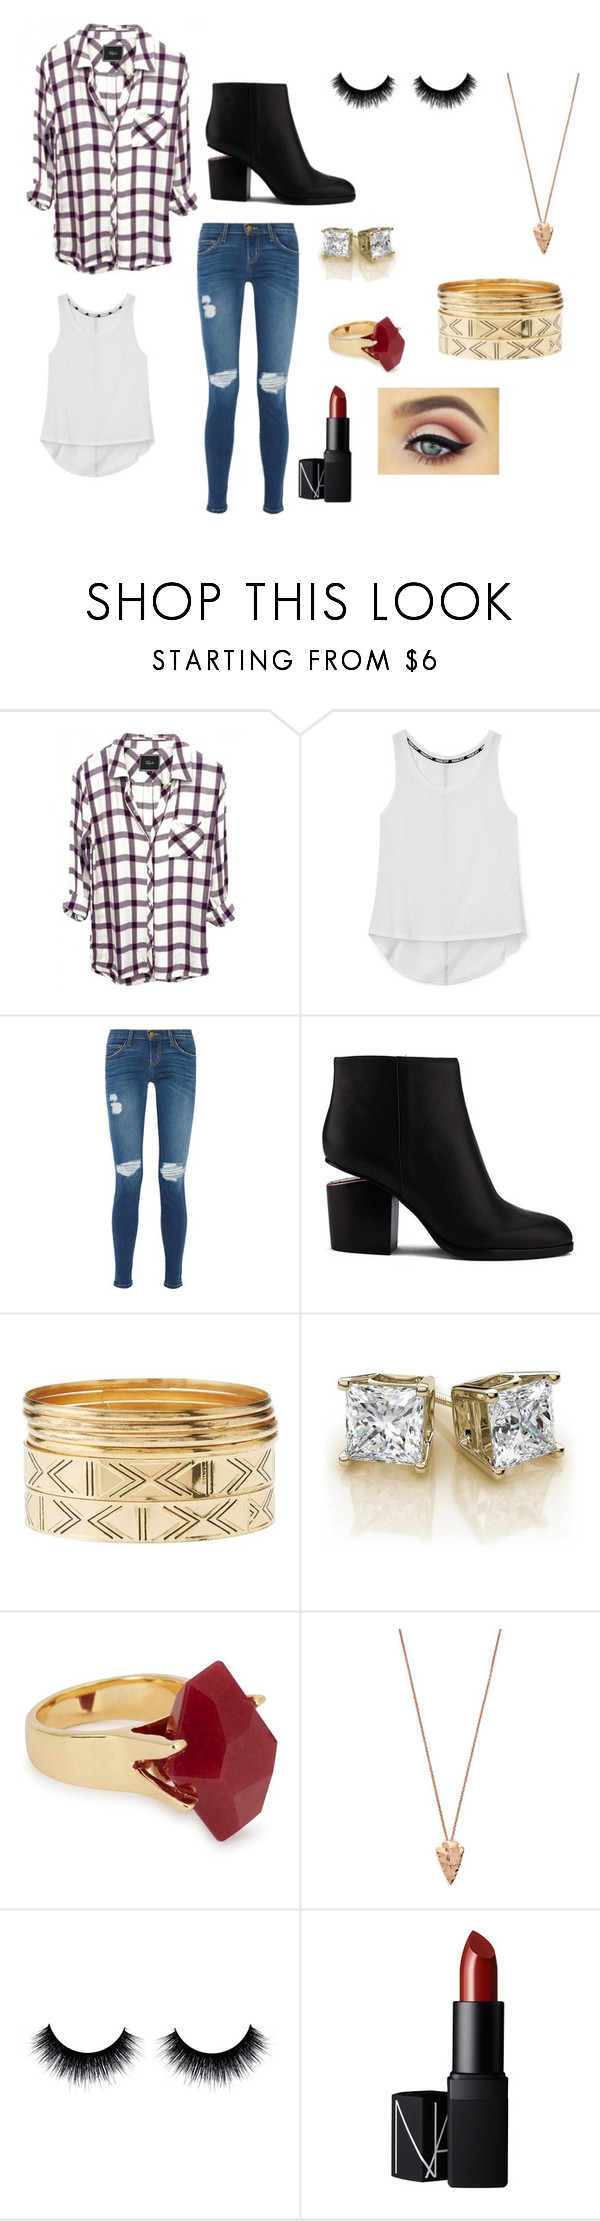 """Phori"" by phoridavies on Polyvore featuring Rebecca Minkoff, Current/Elliott, Alexander Wang, Charlotte Russe, Lola Rose, Pamela Love, NARS Cosmetics, GRANNY, Phori and madgramma"